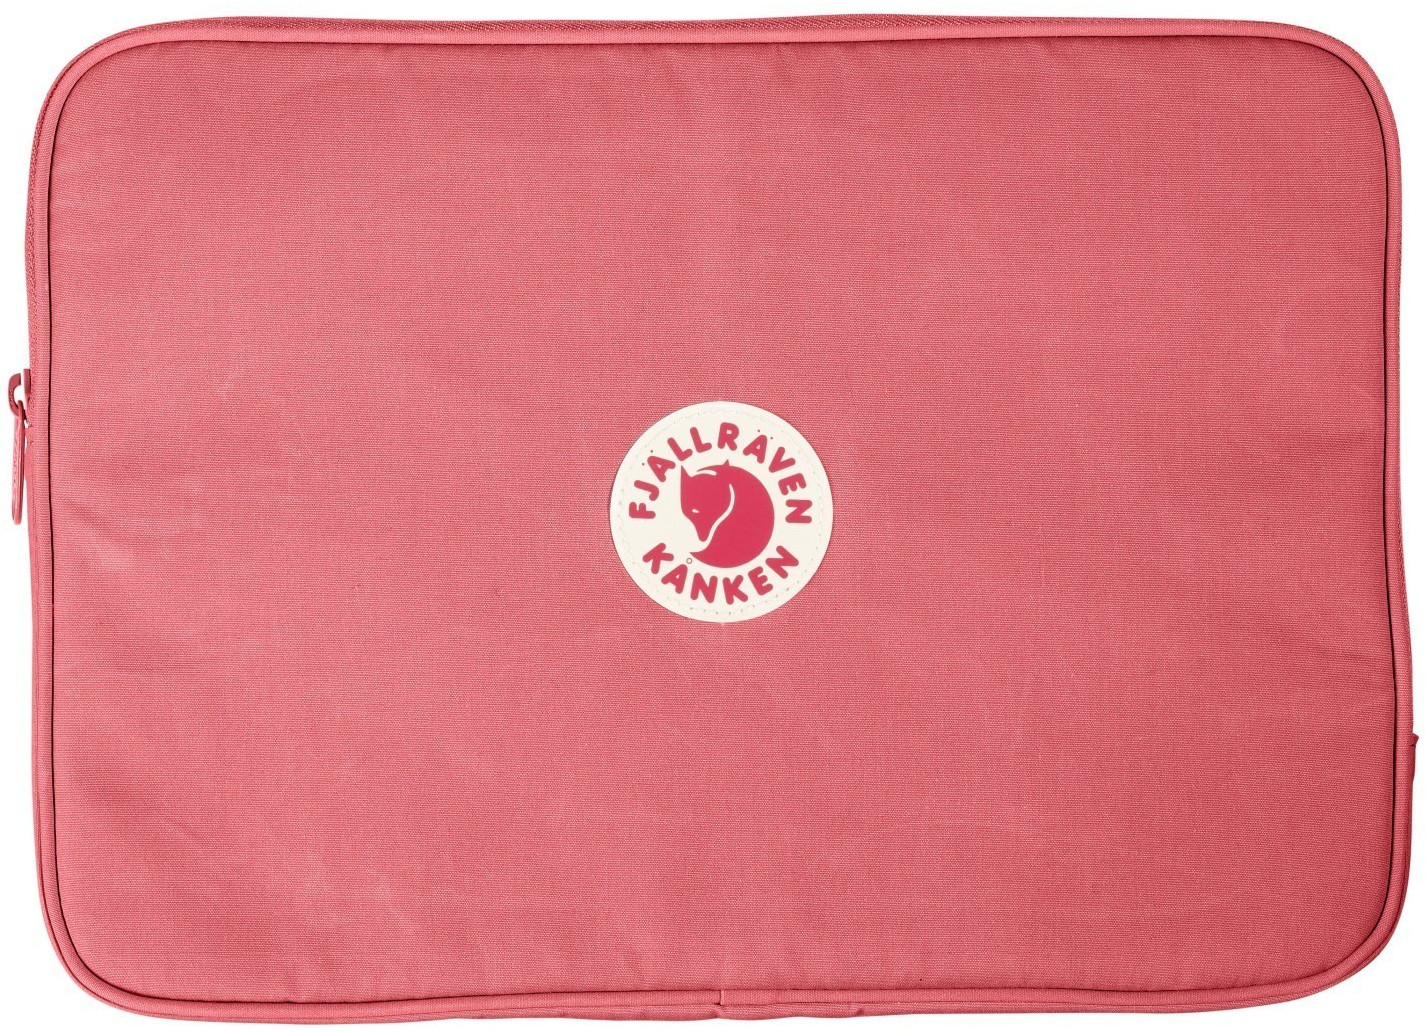 "Image of Fjällräven Kånken Laptop Case 13"" peach pink"